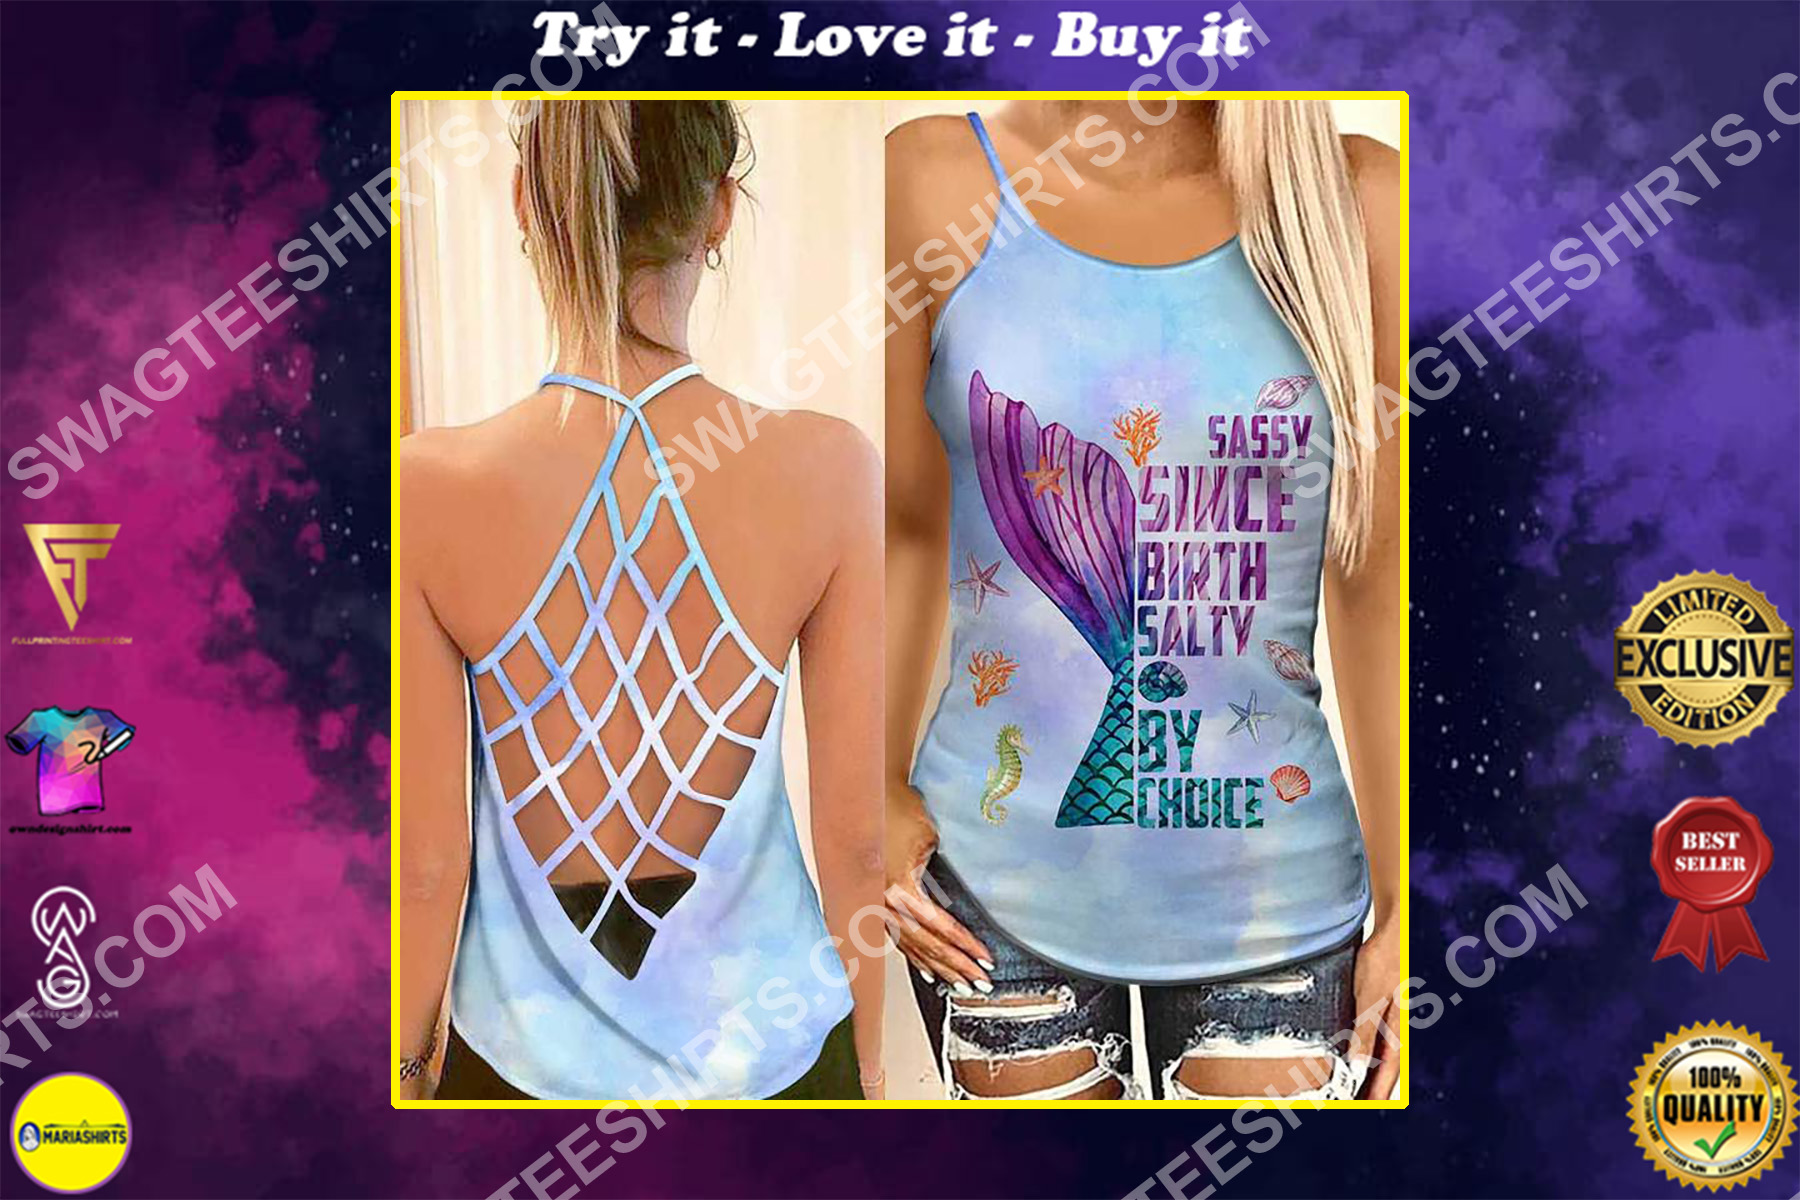 the mermaid sassy since birth salty by choice strappy back tank top